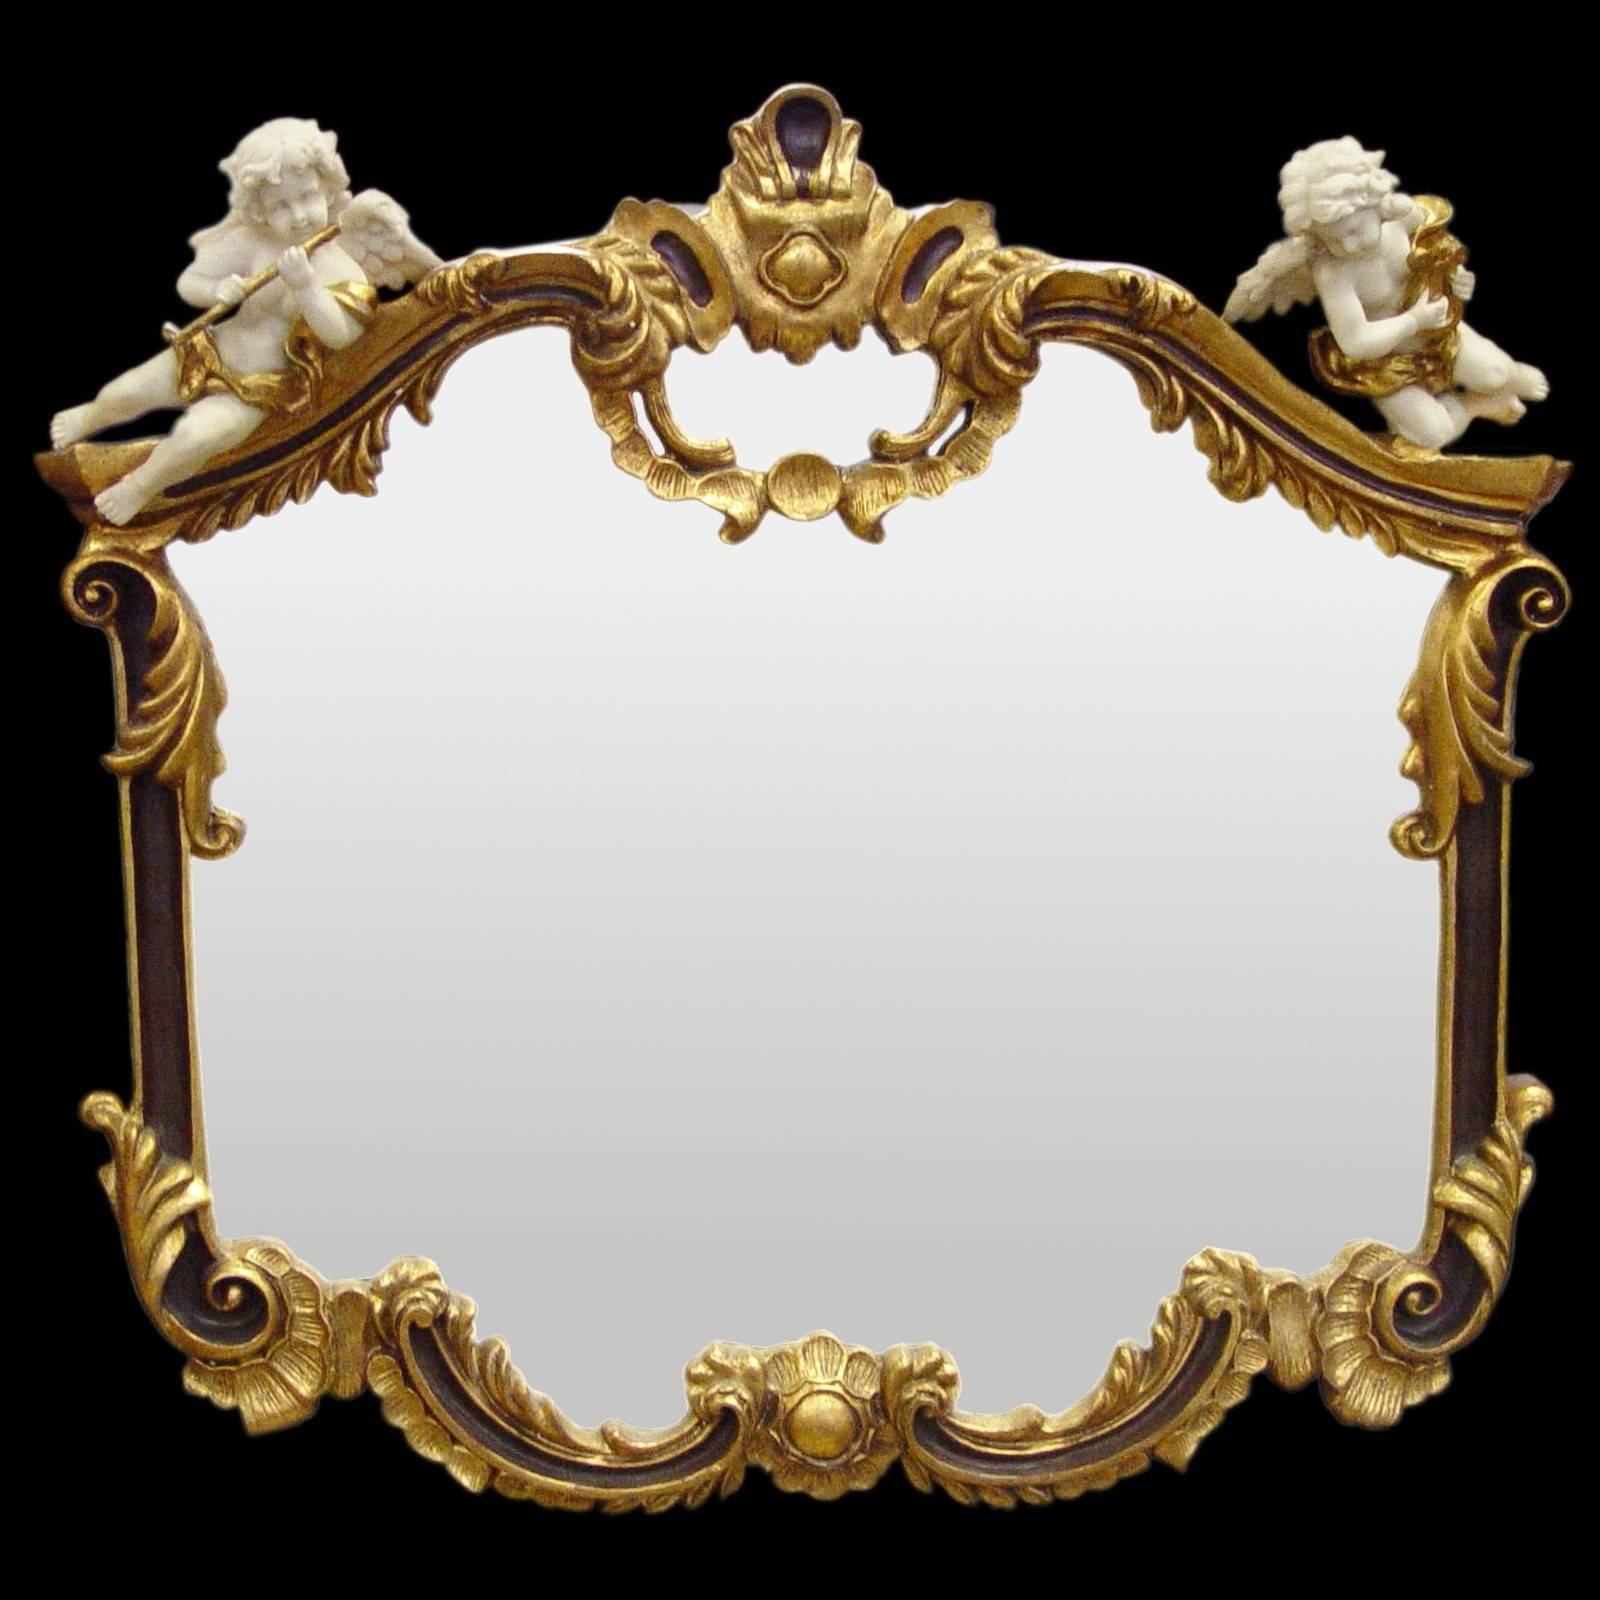 Baroque Mirror Wall Mirror Gold Red 2 White Music Angel Figurines inside White Baroque Wall Mirrors (Image 1 of 25)